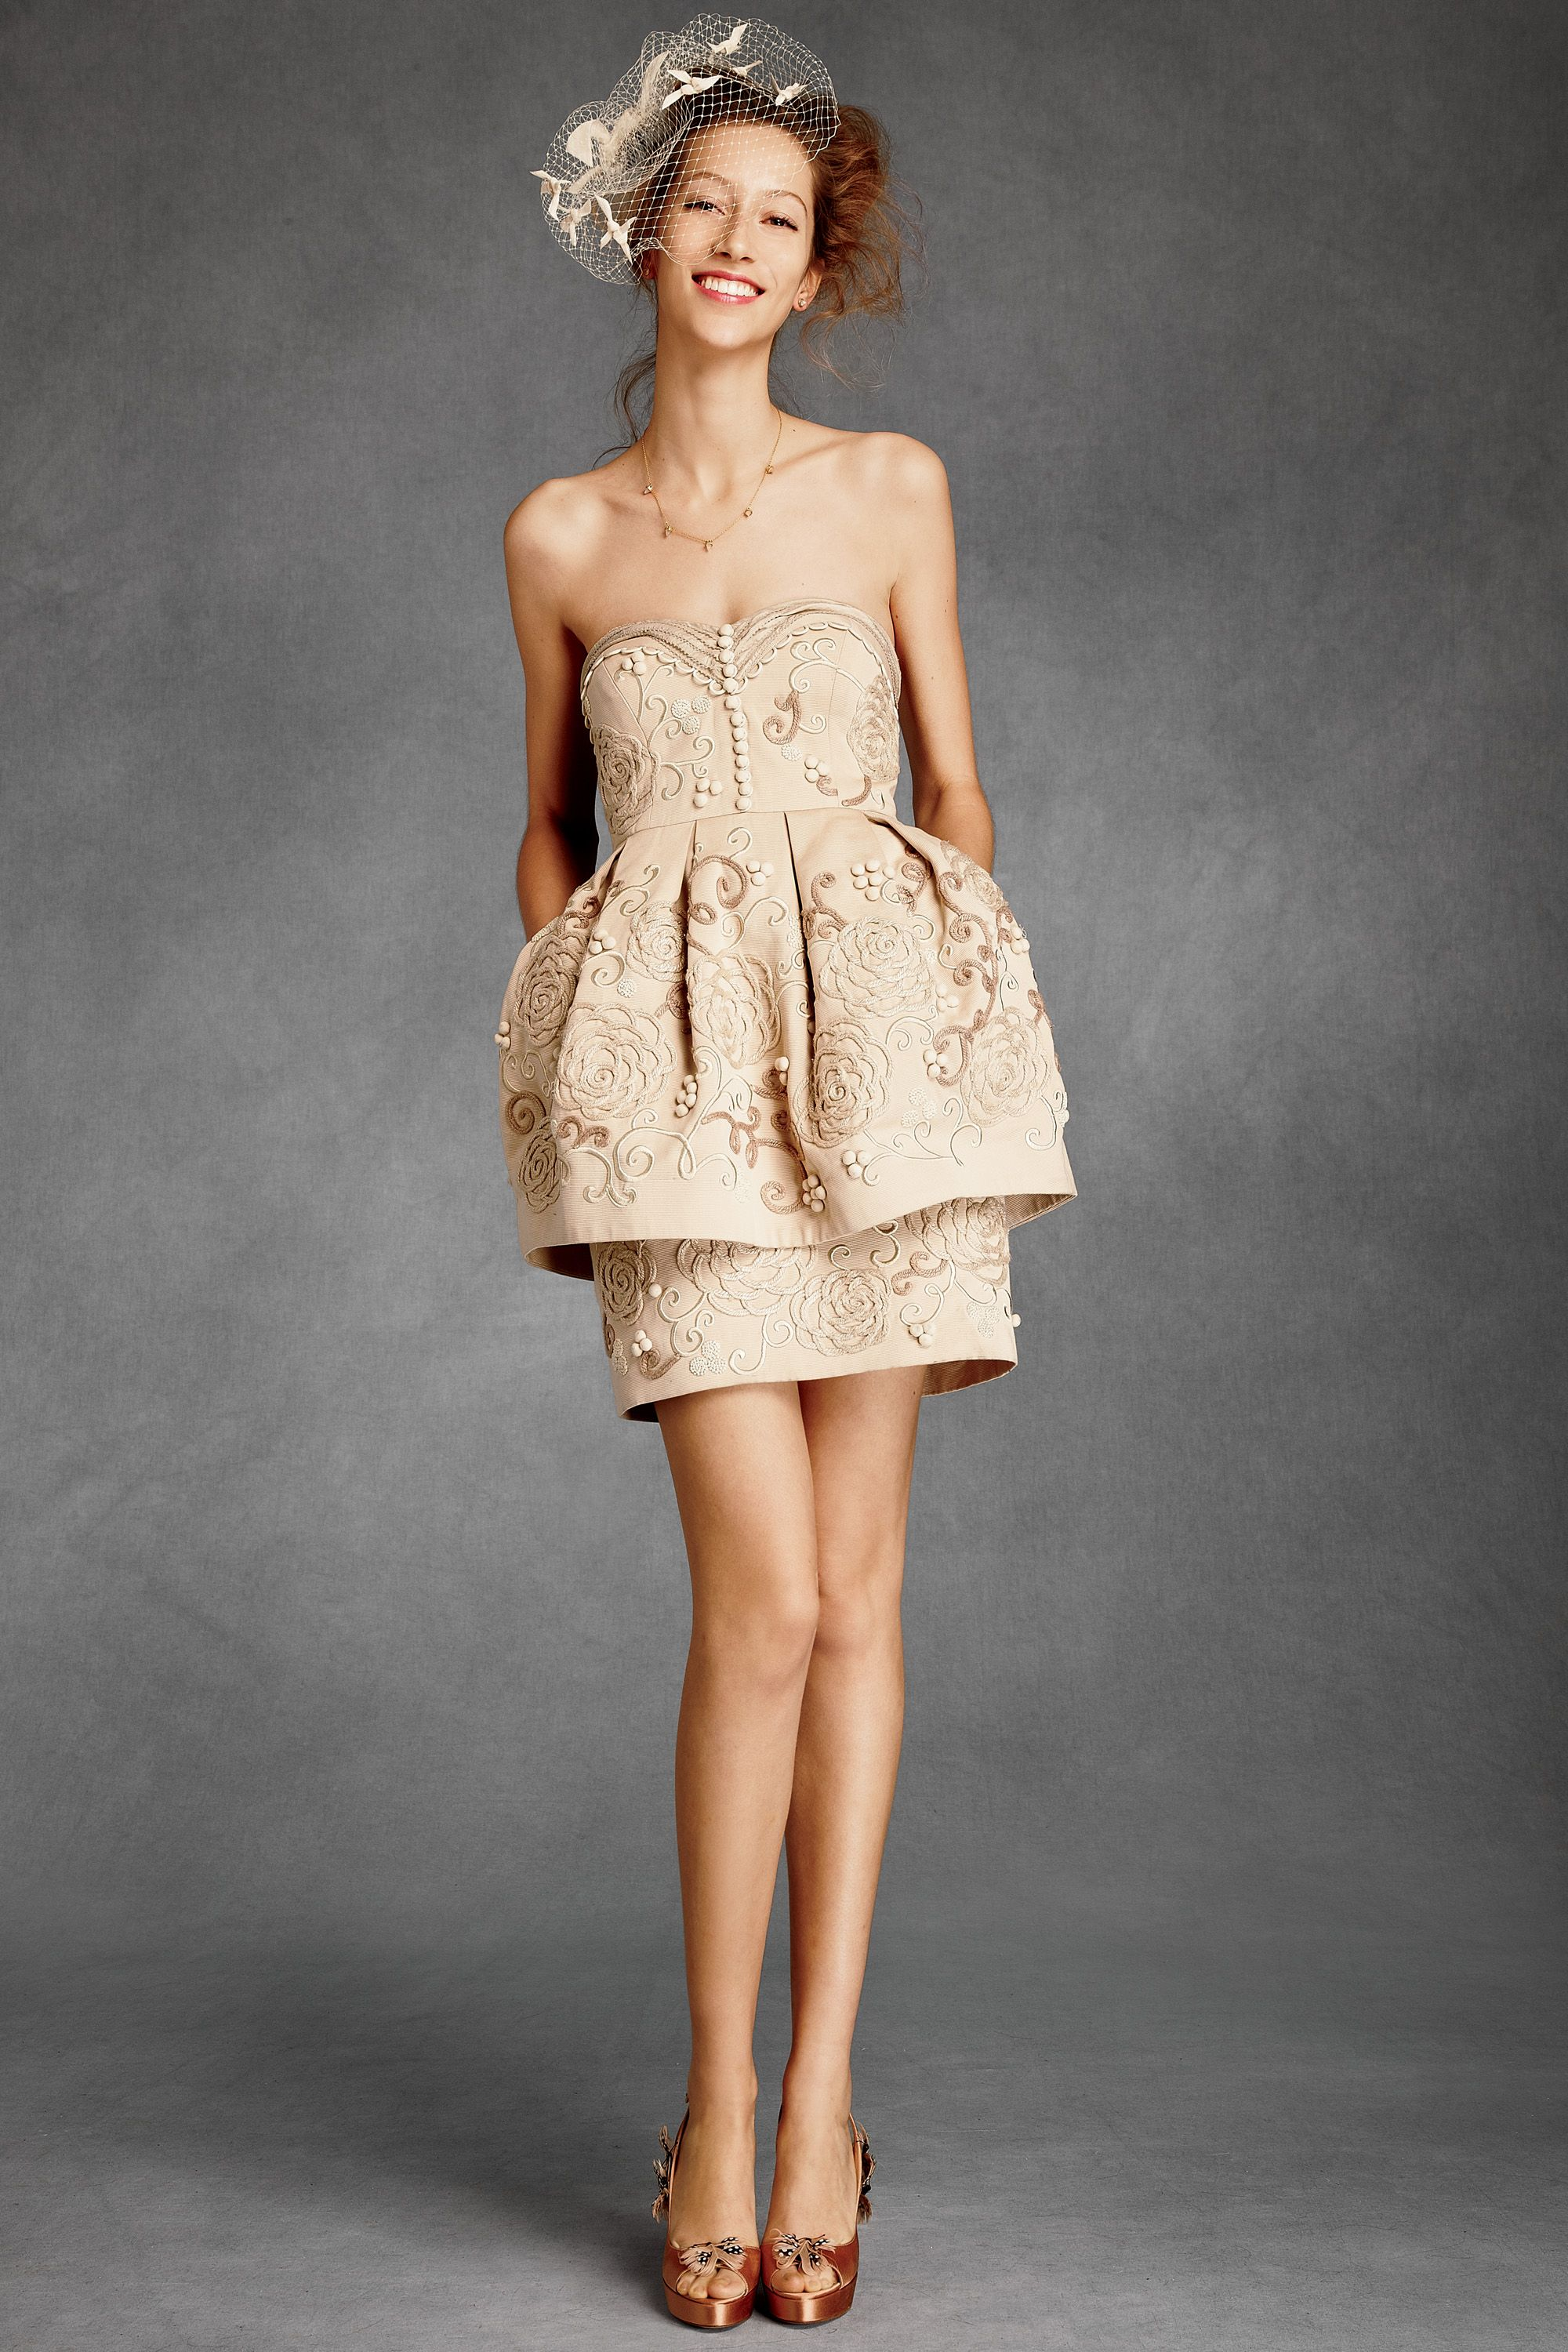 Filigree Cupcake Dress